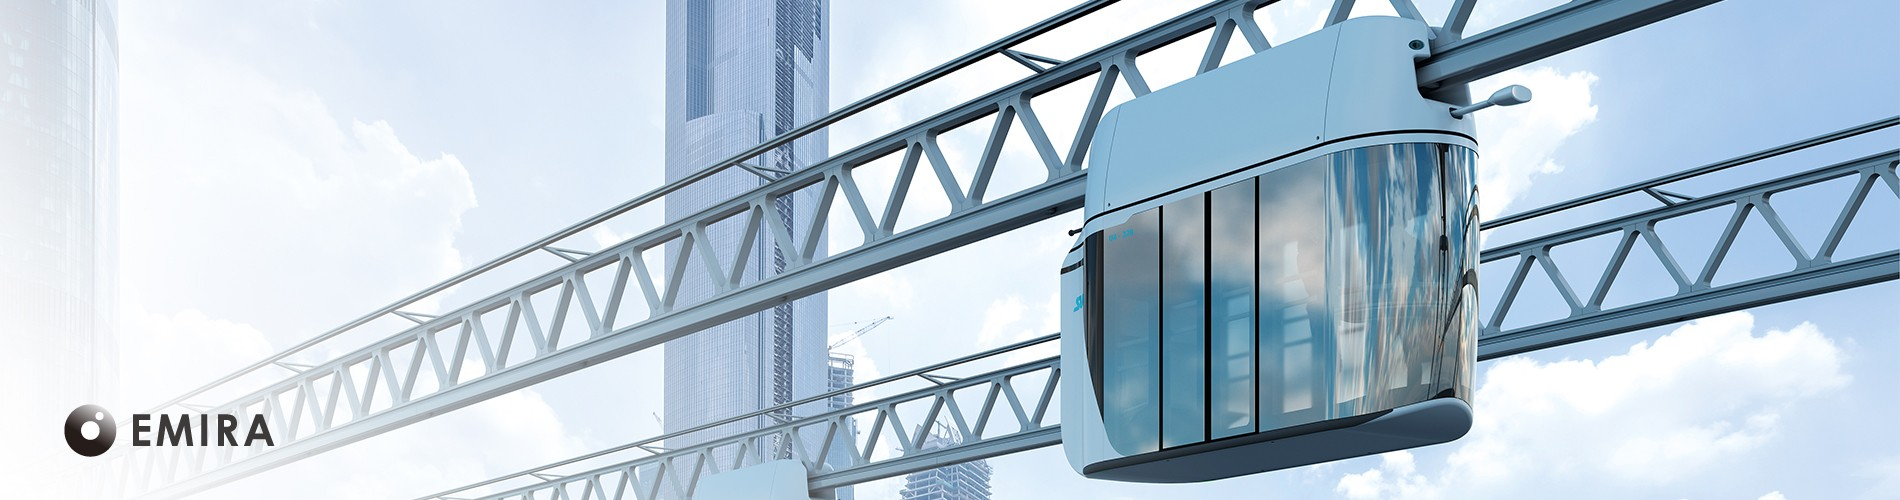 SkyWay can become a part of the world transport system